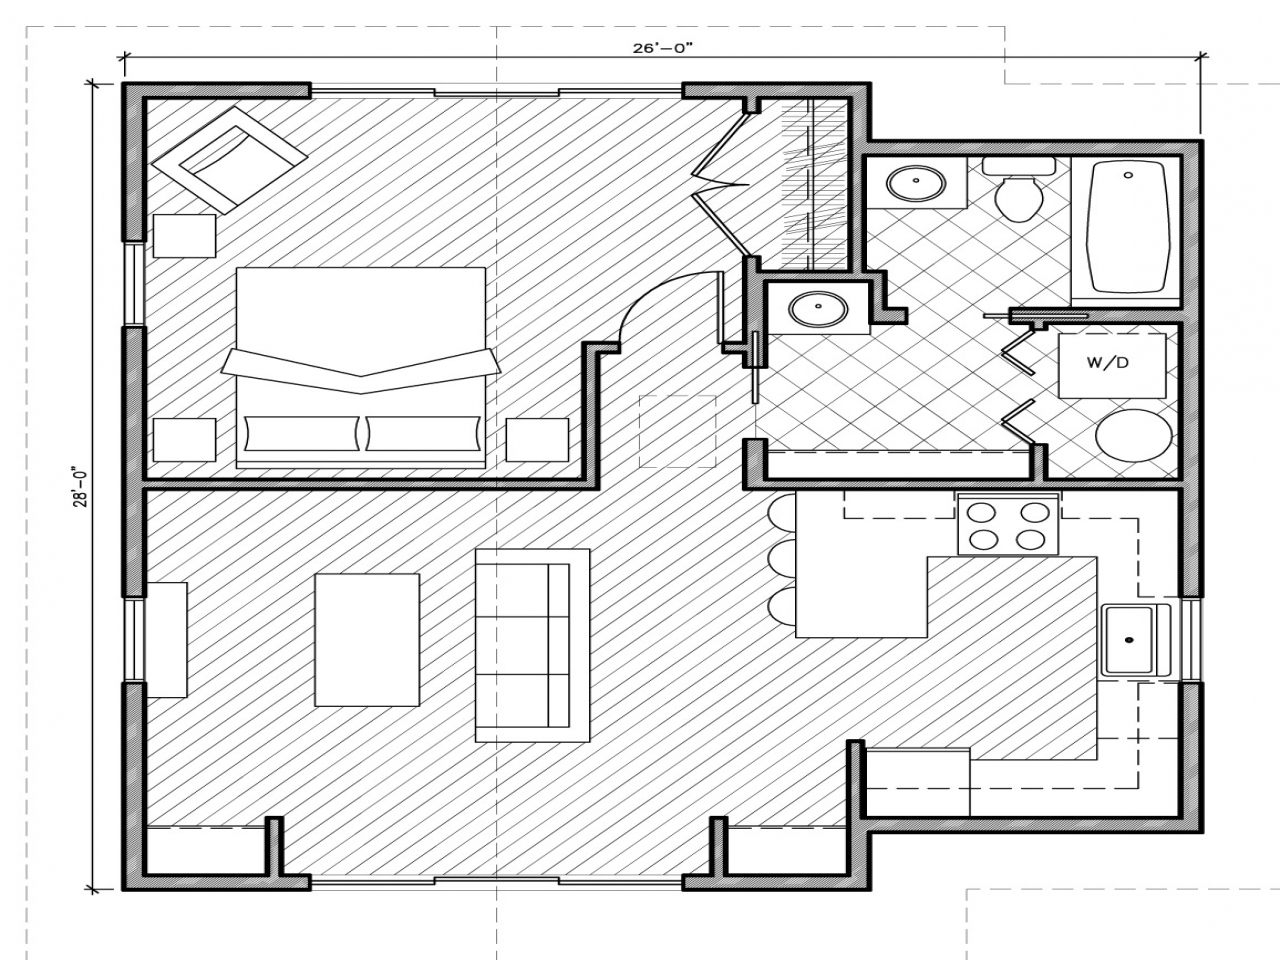 Cottages Under Square Feet Square Feet House Plans With House Plans Under Sq Ft